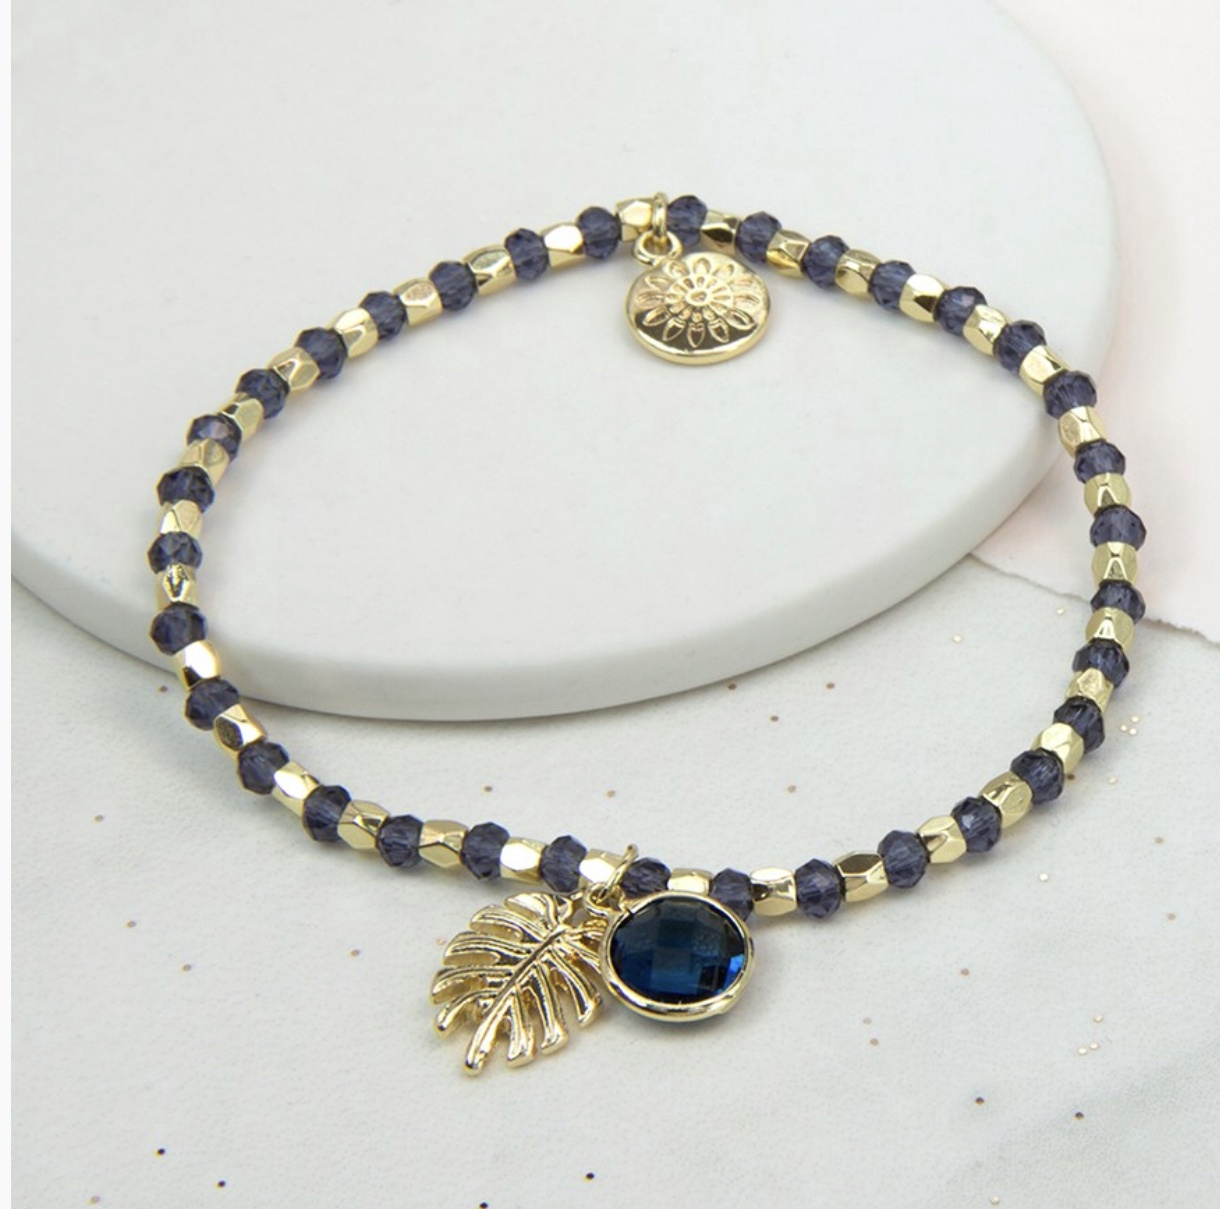 Gold and blue bead bracelet with palm leaf and Chrystal charm